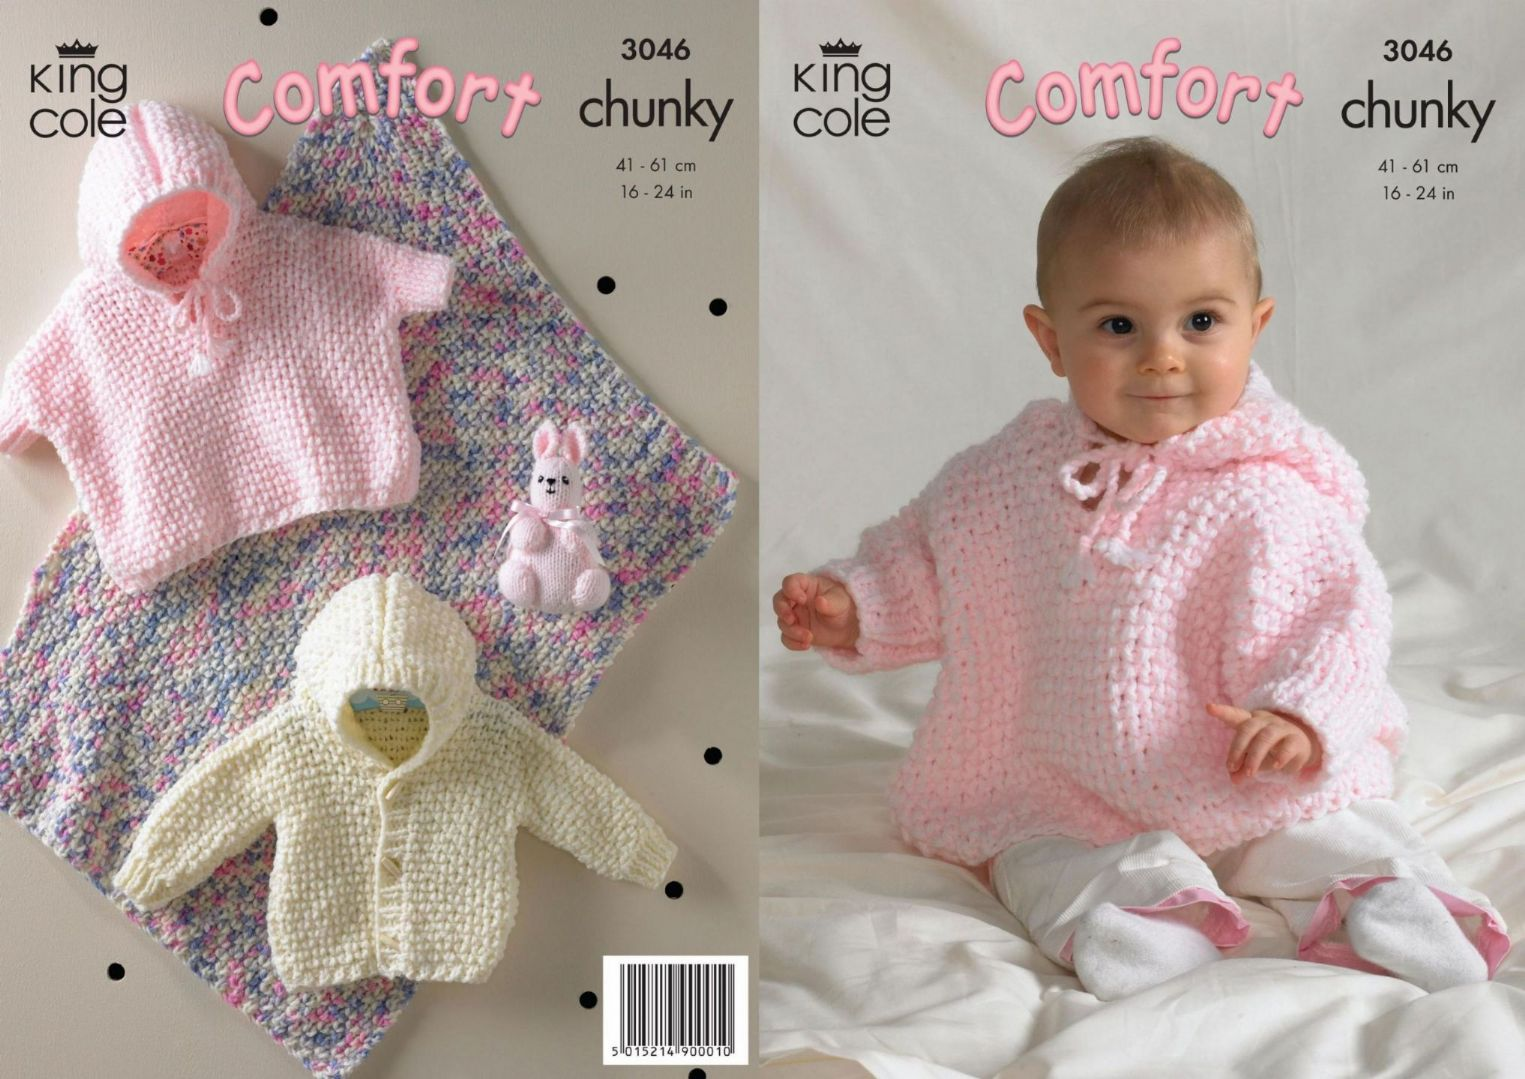 3046 - KING COLE COMFORT CHUNKY BLANKET JACKET CAPE & RABBIT KNITTING PAT...